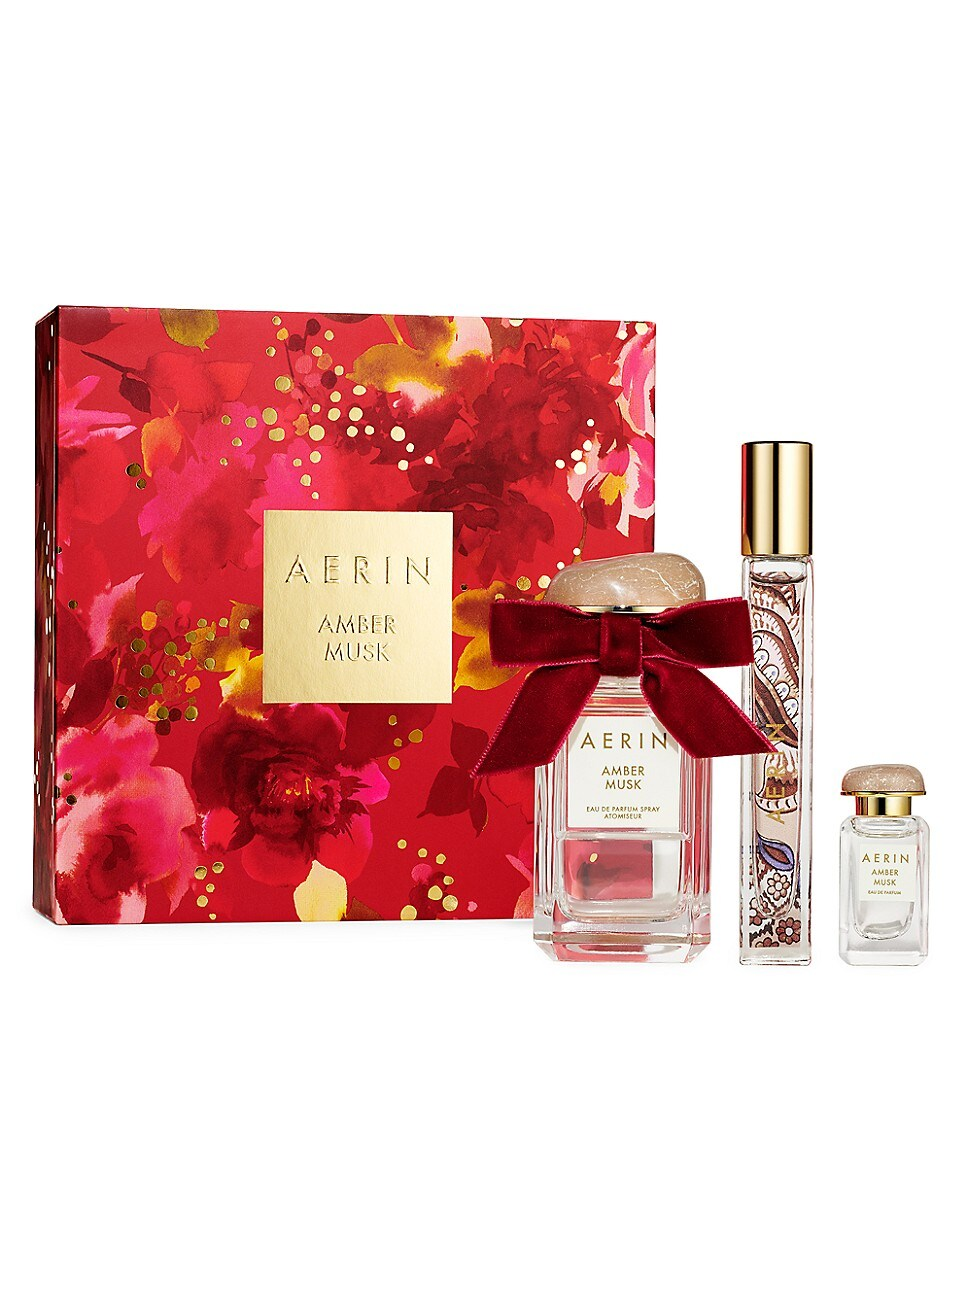 Aerin AMBER MUSK 3-PIECE HOLIDAY GIFT SET